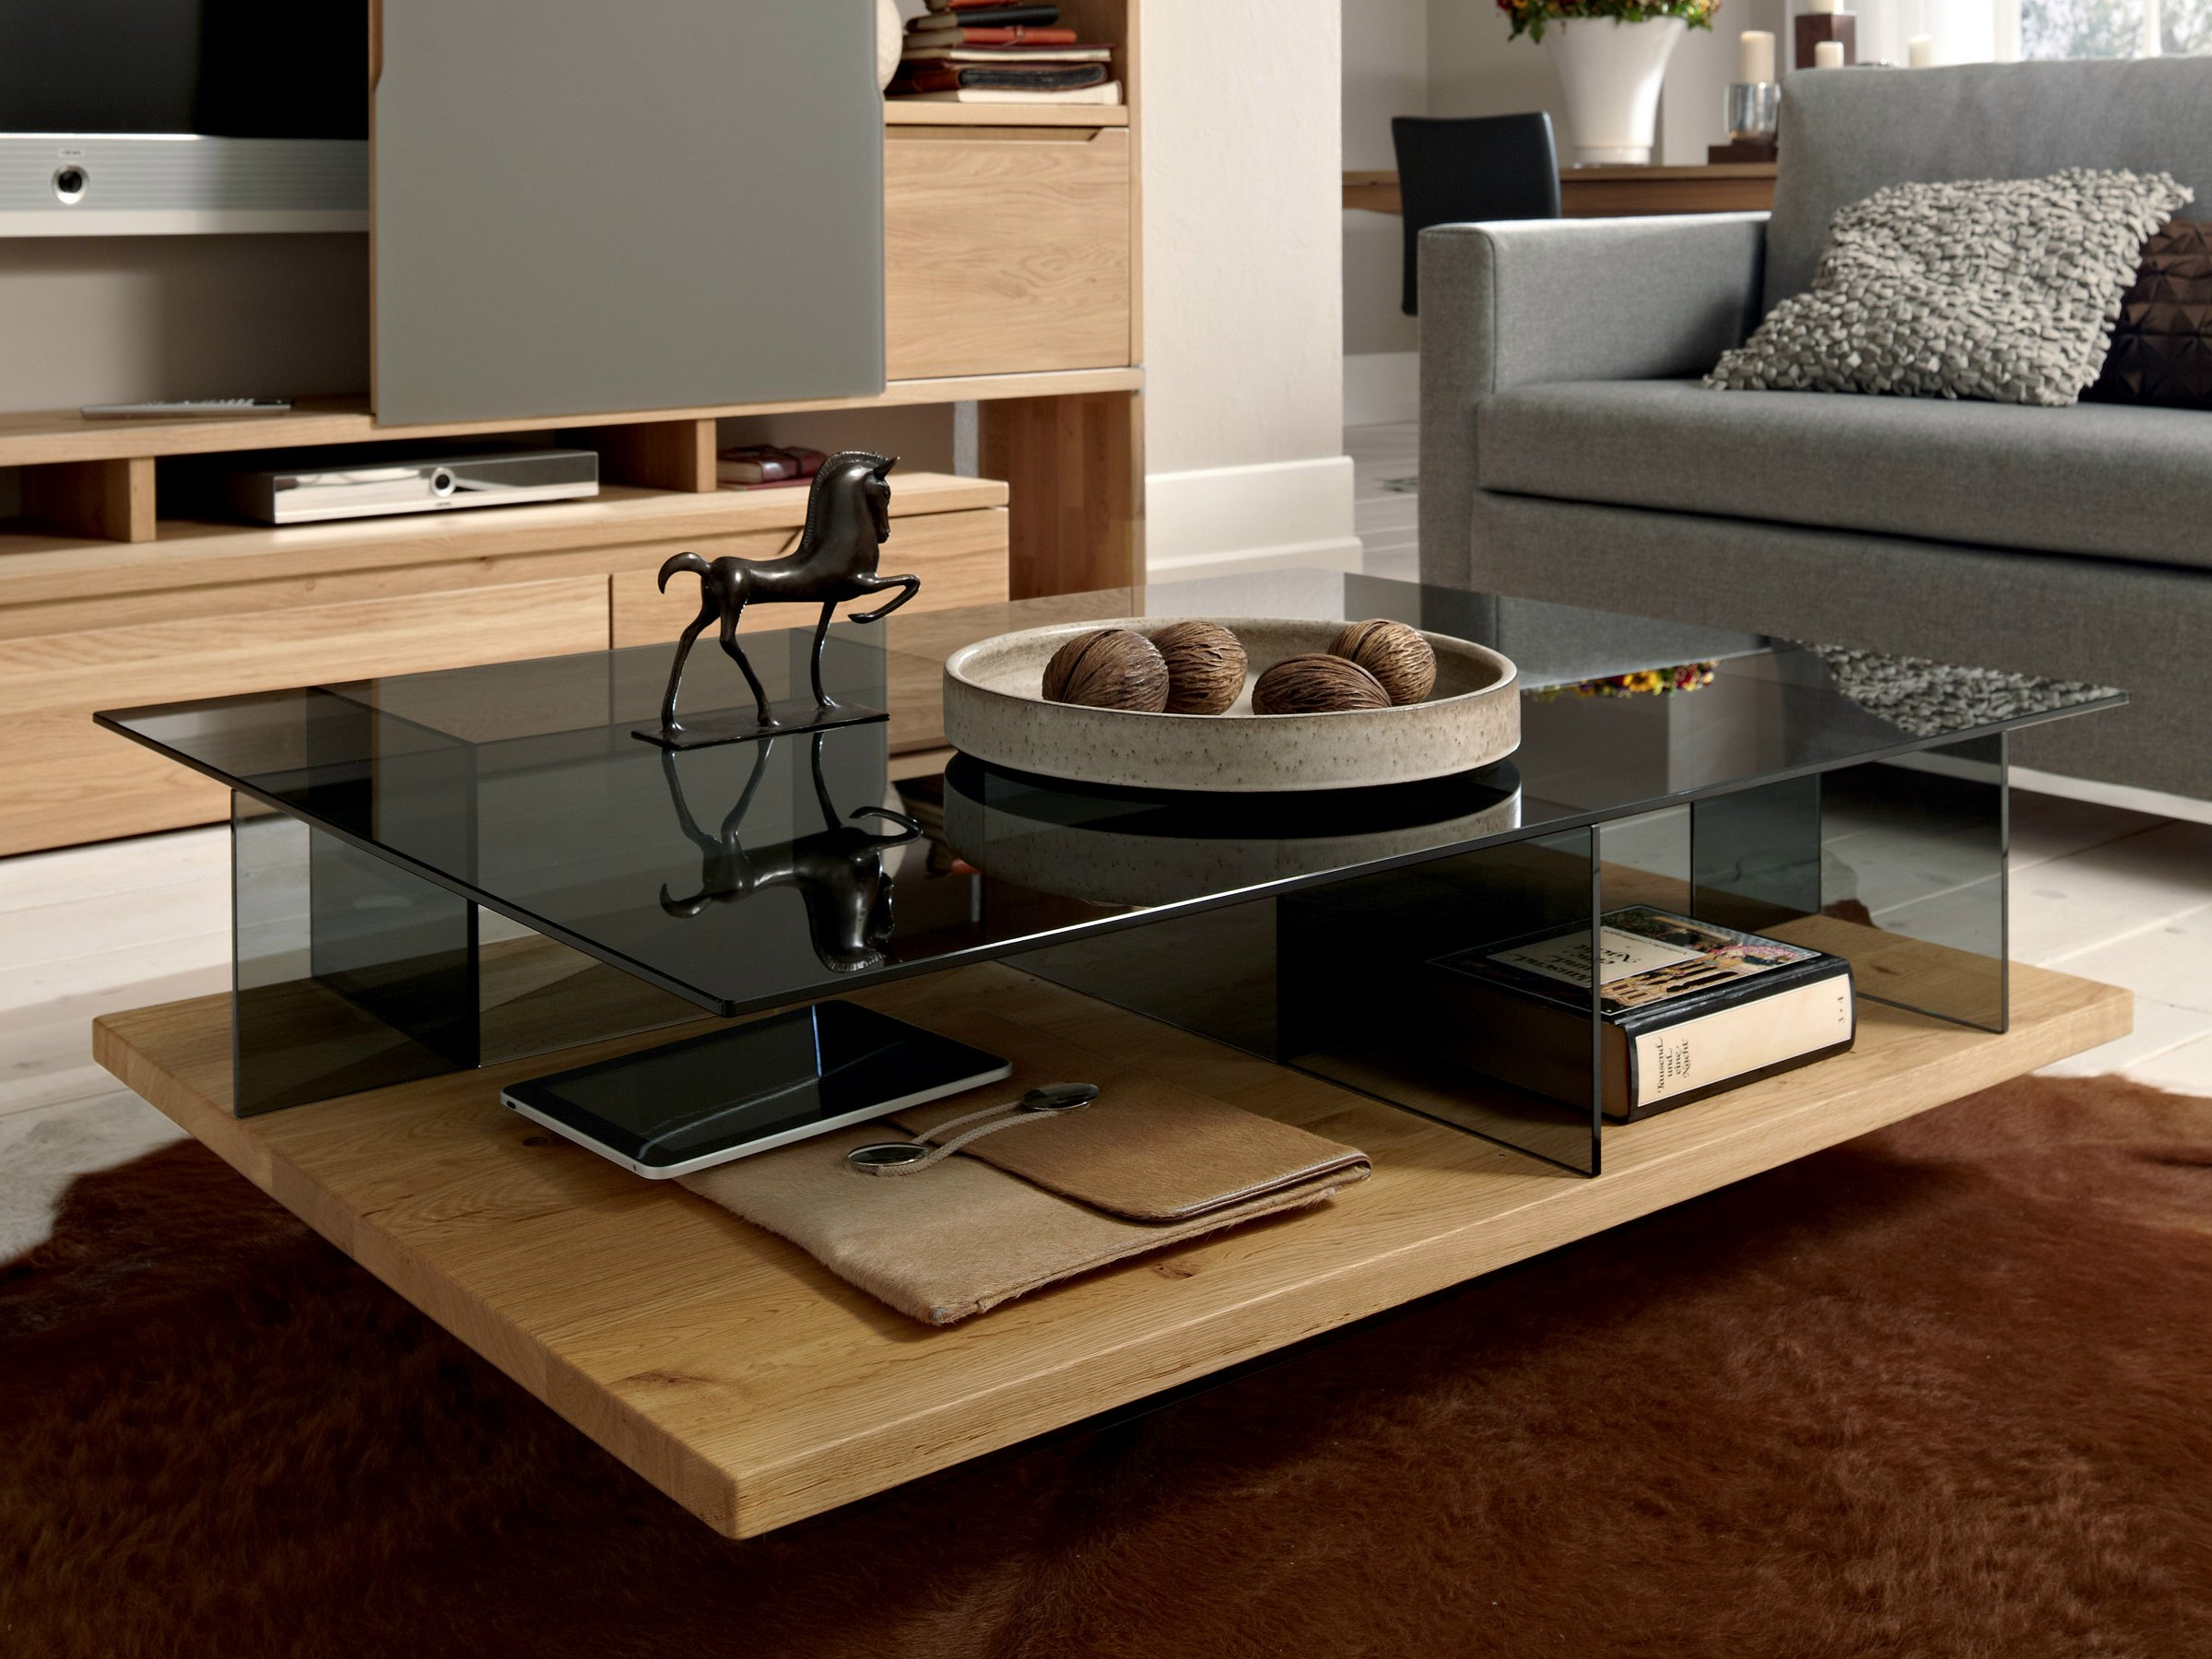 table basse rectangulaire en ch ne ct 150 collection tables basses by h lsta werke h ls. Black Bedroom Furniture Sets. Home Design Ideas